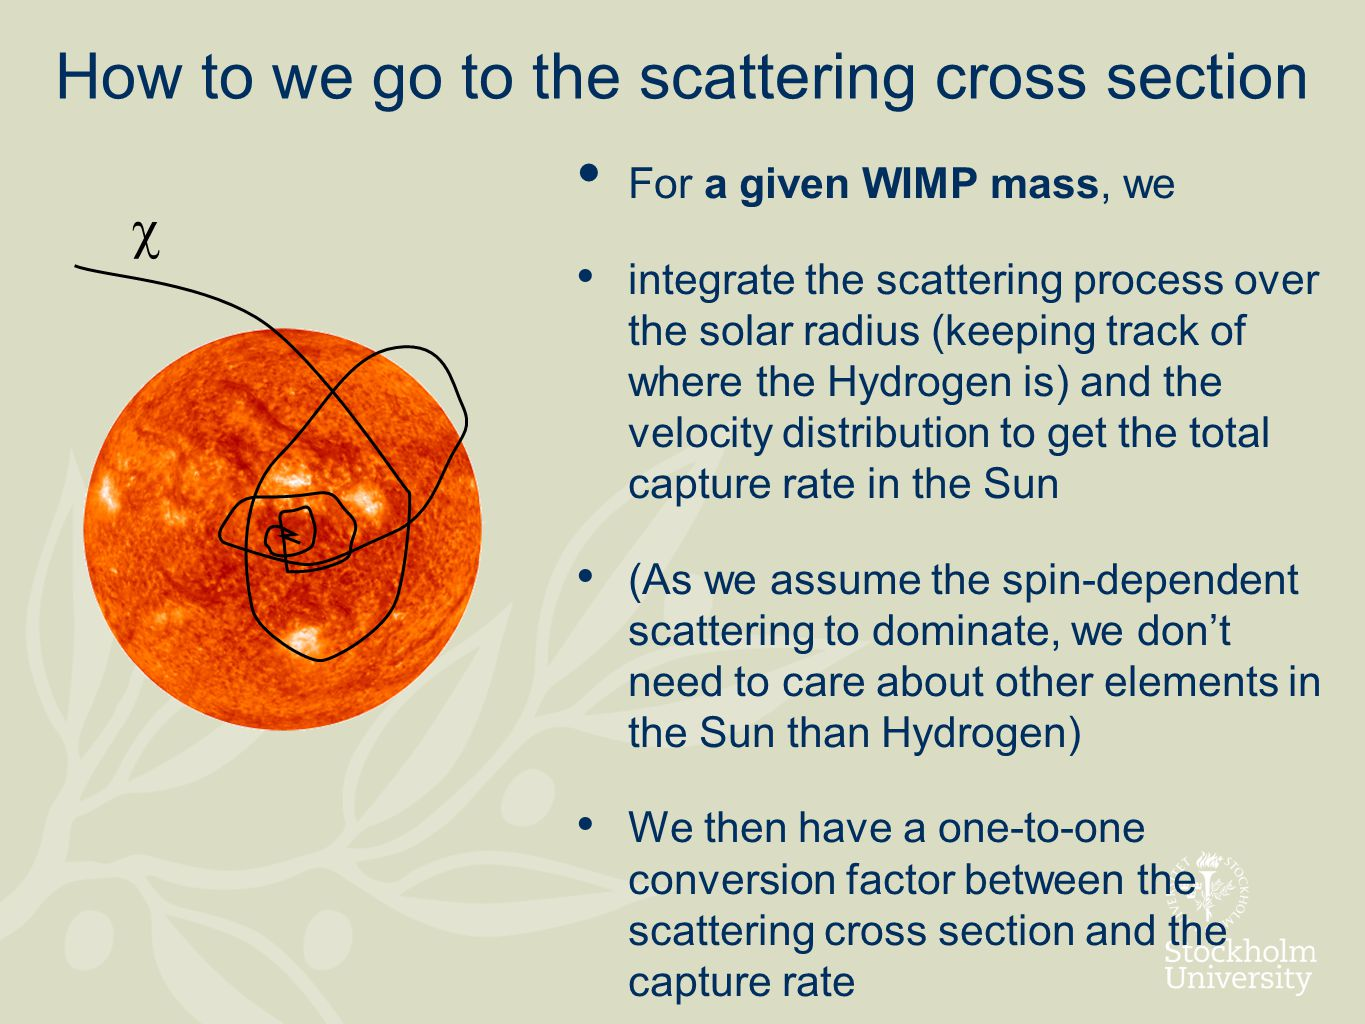 How to we go to the scattering cross section For a given WIMP mass, we integrate the scattering process over the solar radius (keeping track of where